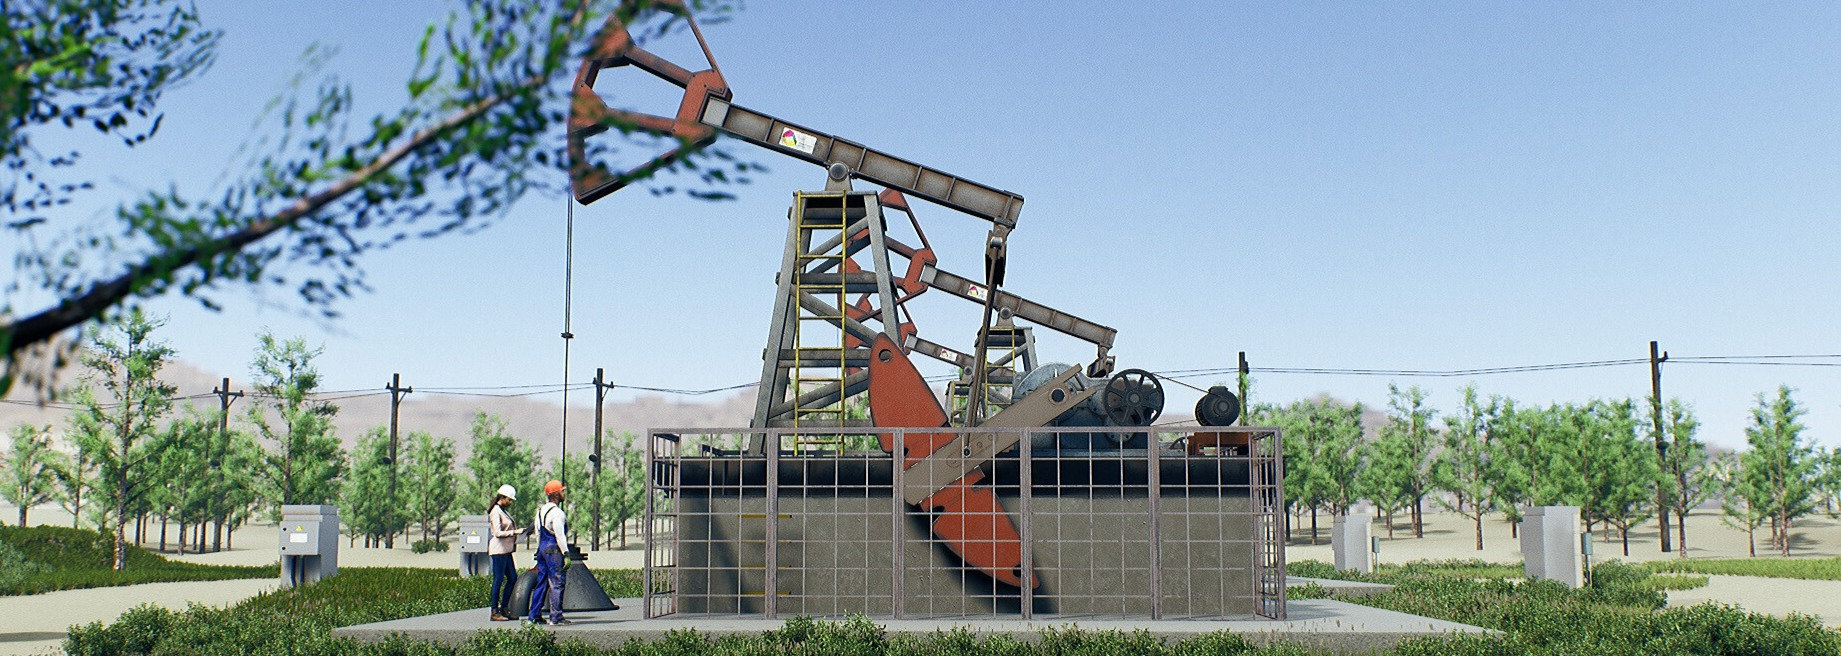 Oilfield Visualization